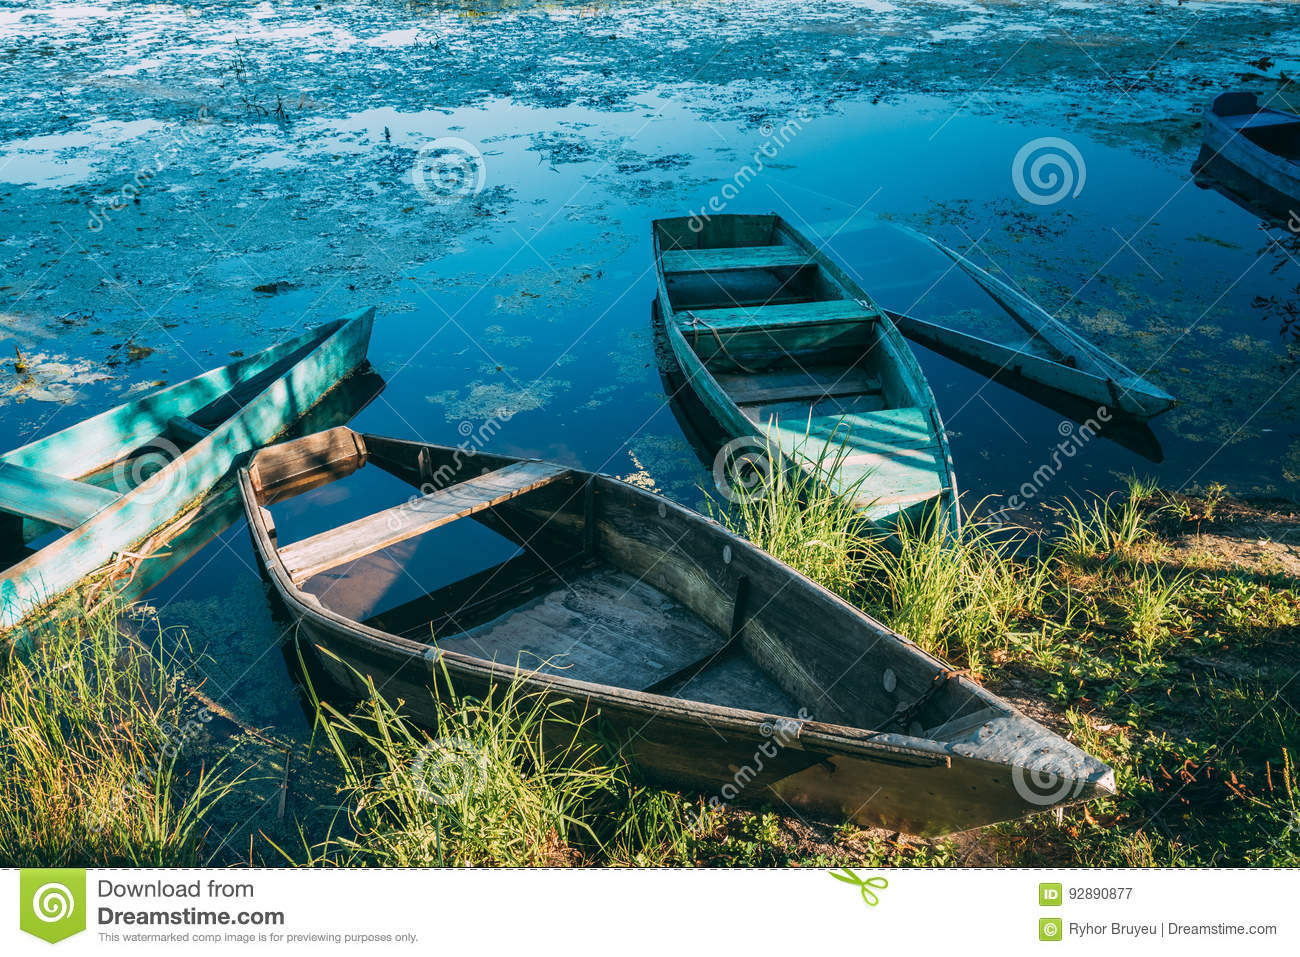 Abandoned old wooden fishing boats in summer lake or river download abandoned old wooden fishing boats in summer lake or river beautiful summer stock image publicscrutiny Image collections